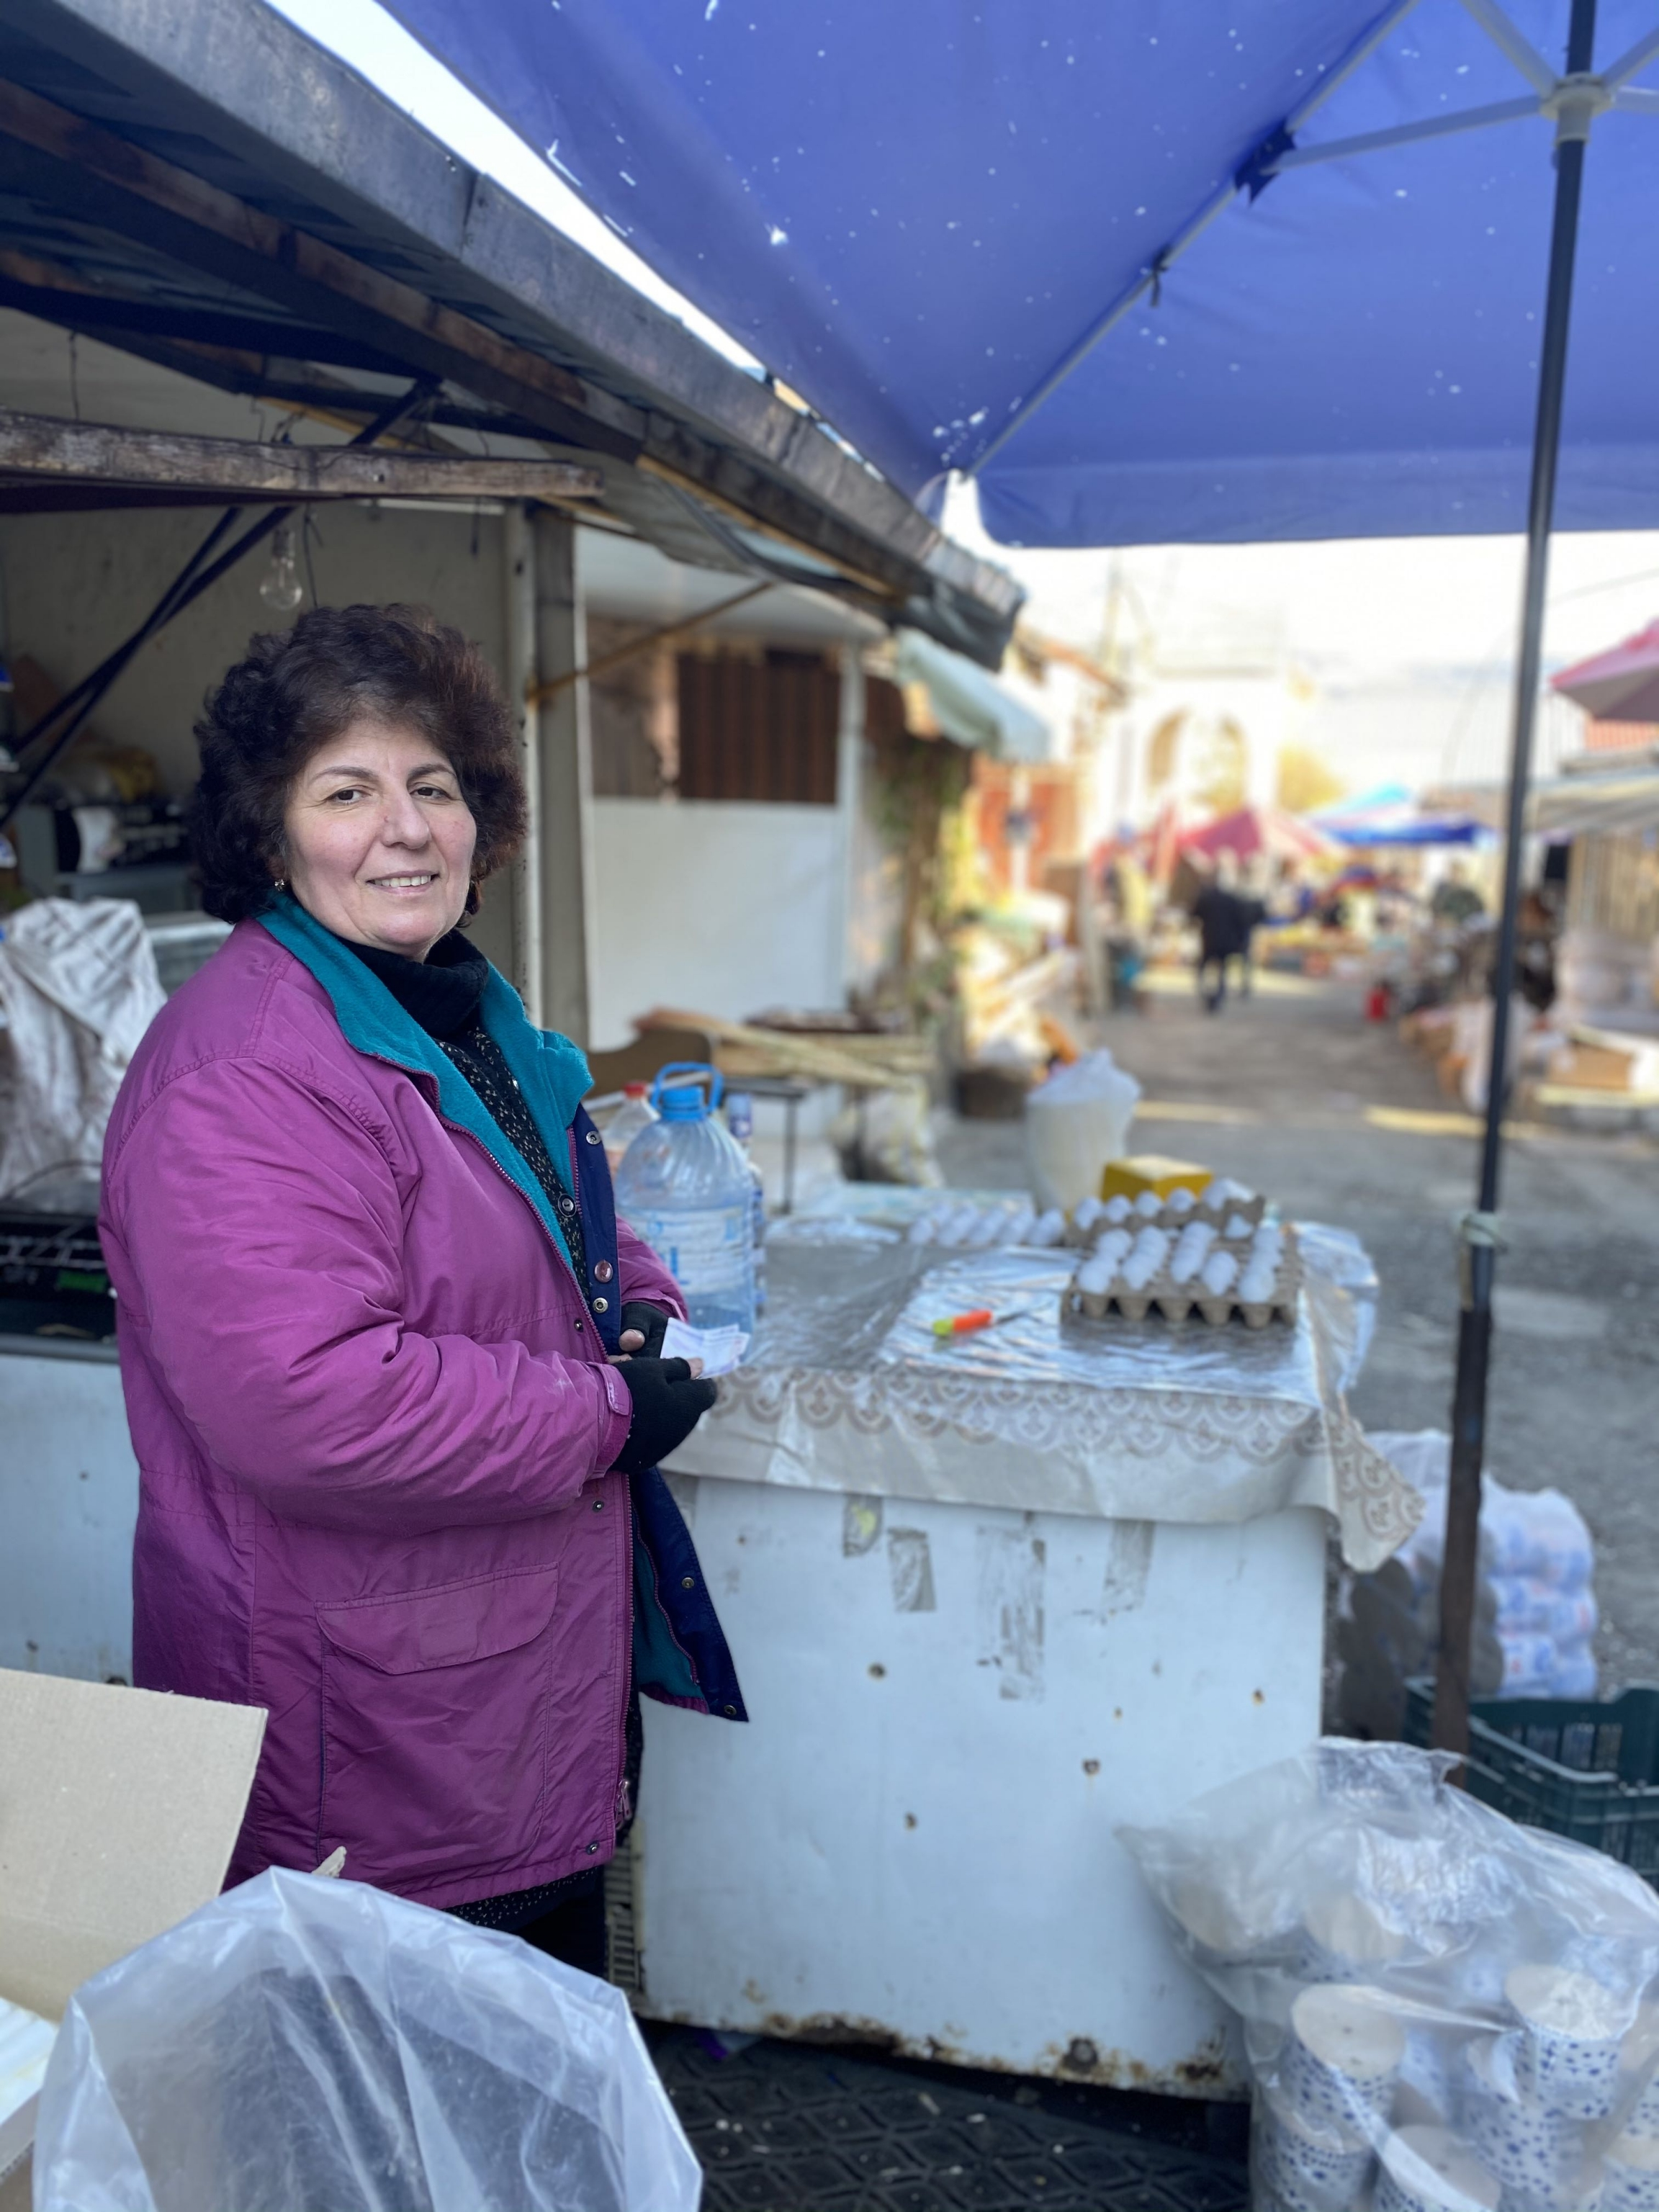 Rima Arushanyan, 58, sells eggs and homemade vodka in the Stepanakert market. Stepanakert is the de facto capital of Nagorno-Karabakh.